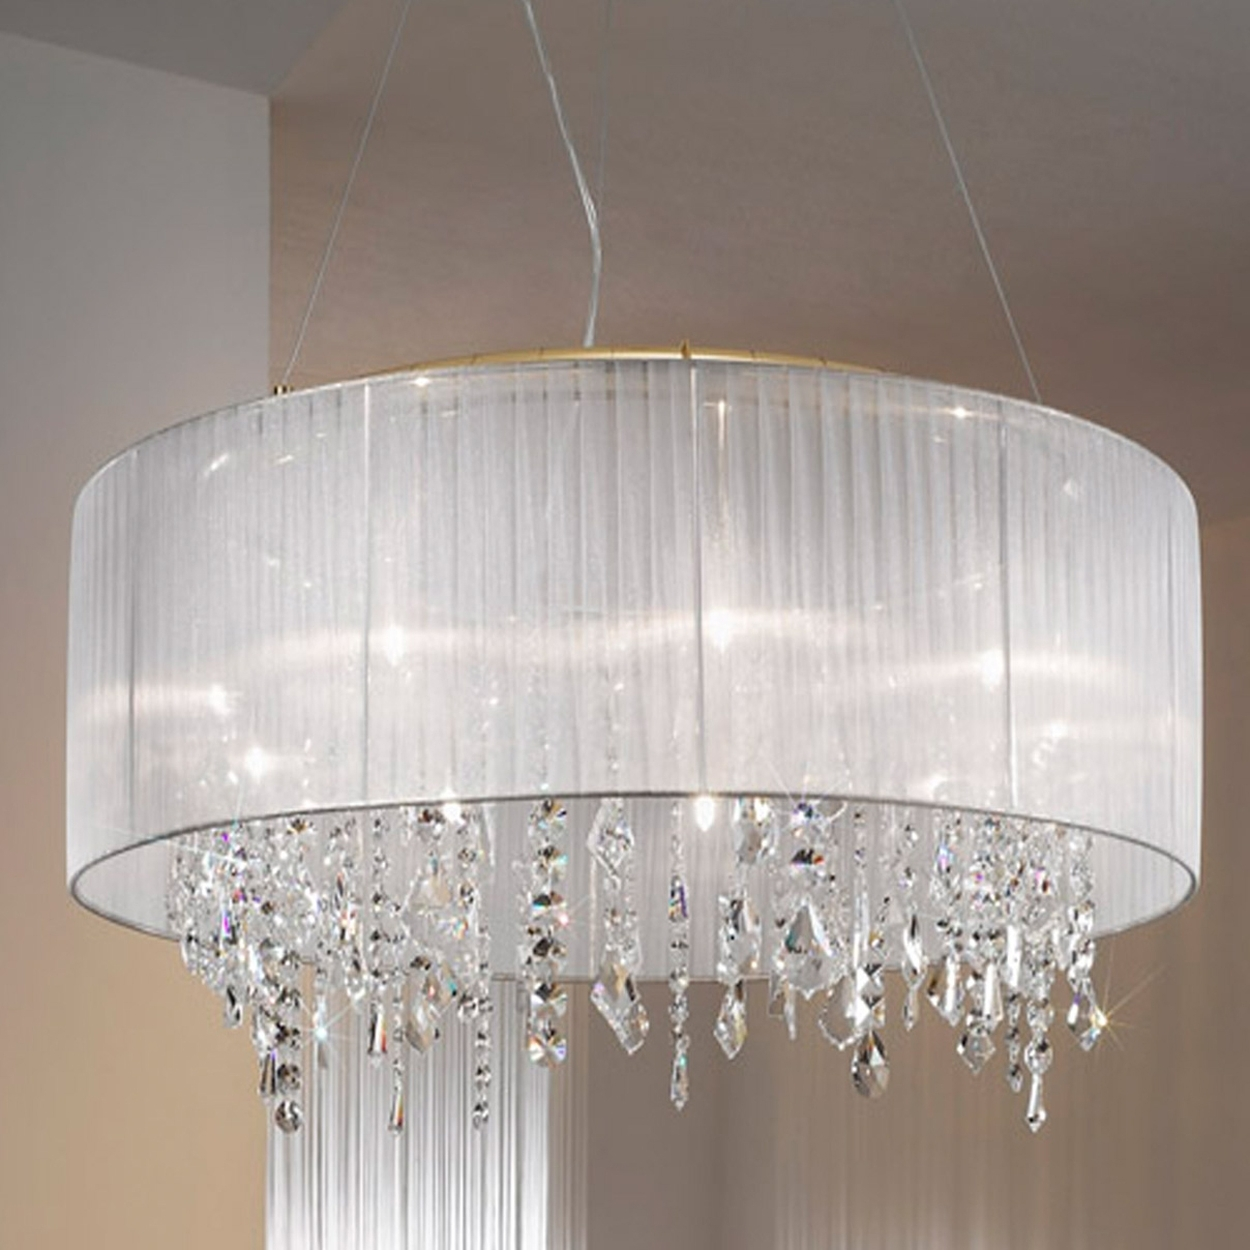 Well Liked Glamorous Barrel Lamp Shade Chandelier Drum Chandeliers Shades Of With Lampshade Chandeliers (View 15 of 15)